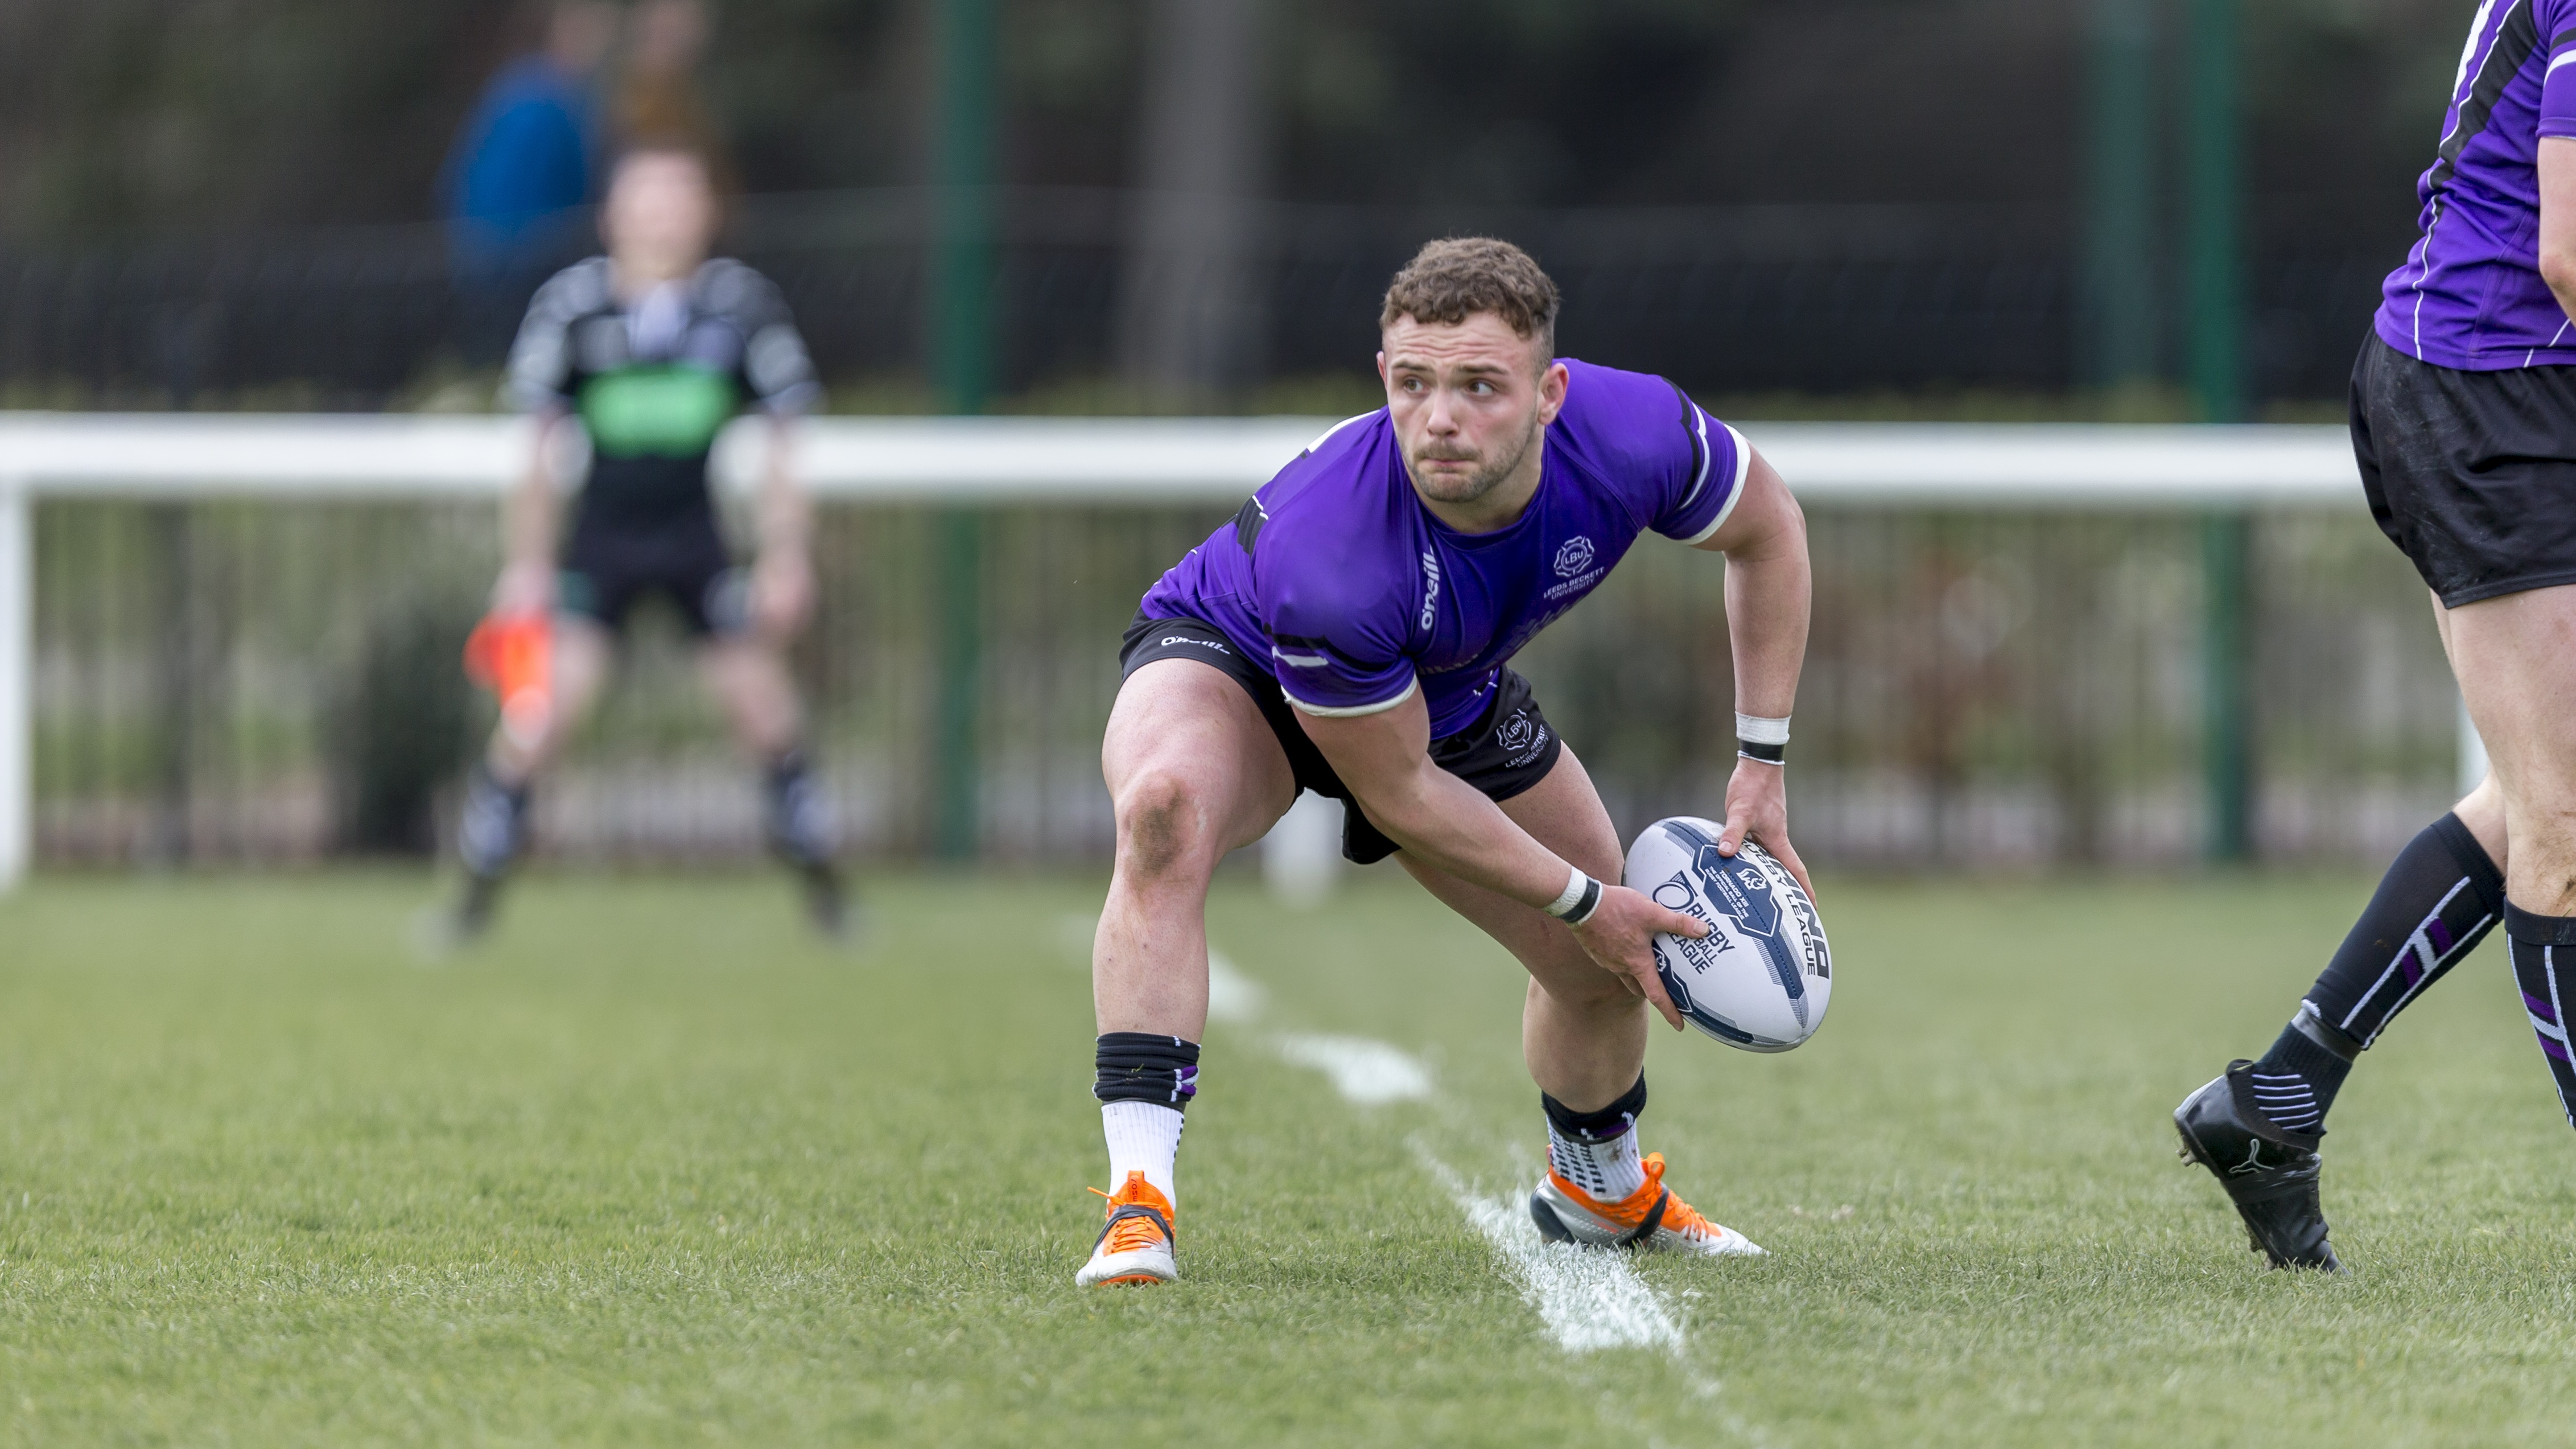 Leeds Beckett University students to lock horns in Challenge Cup semi-final